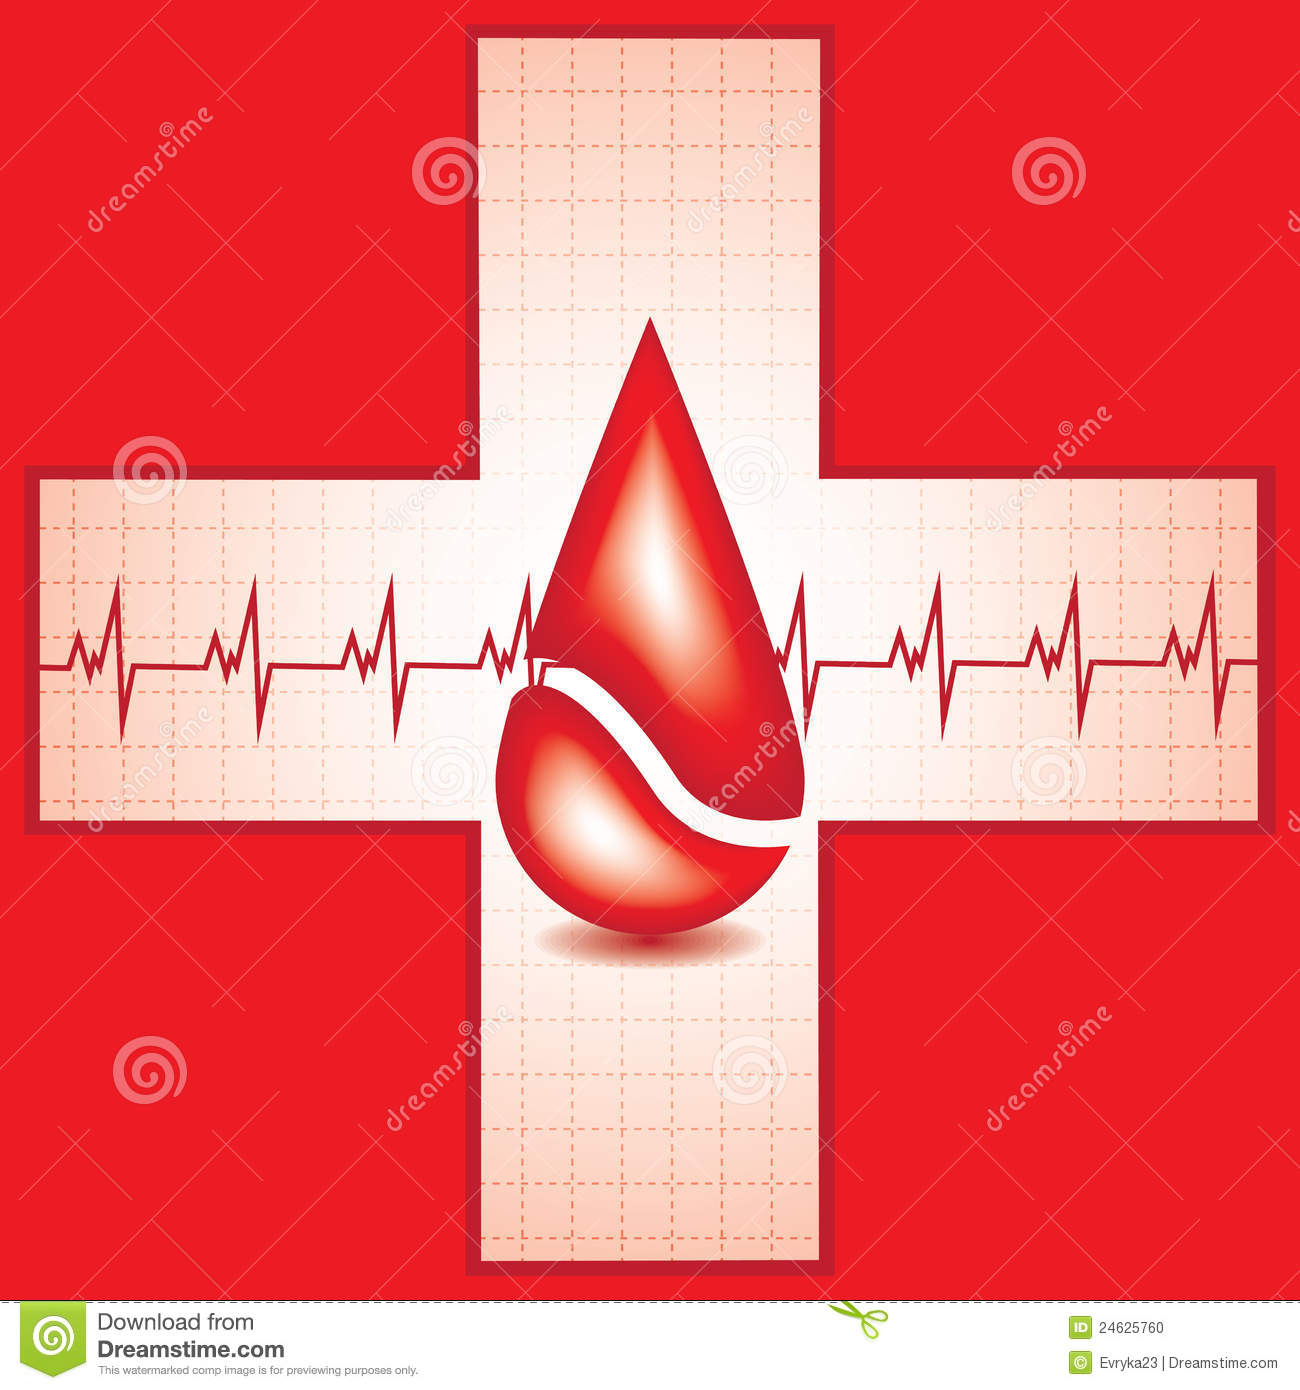 red medical background - photo #21